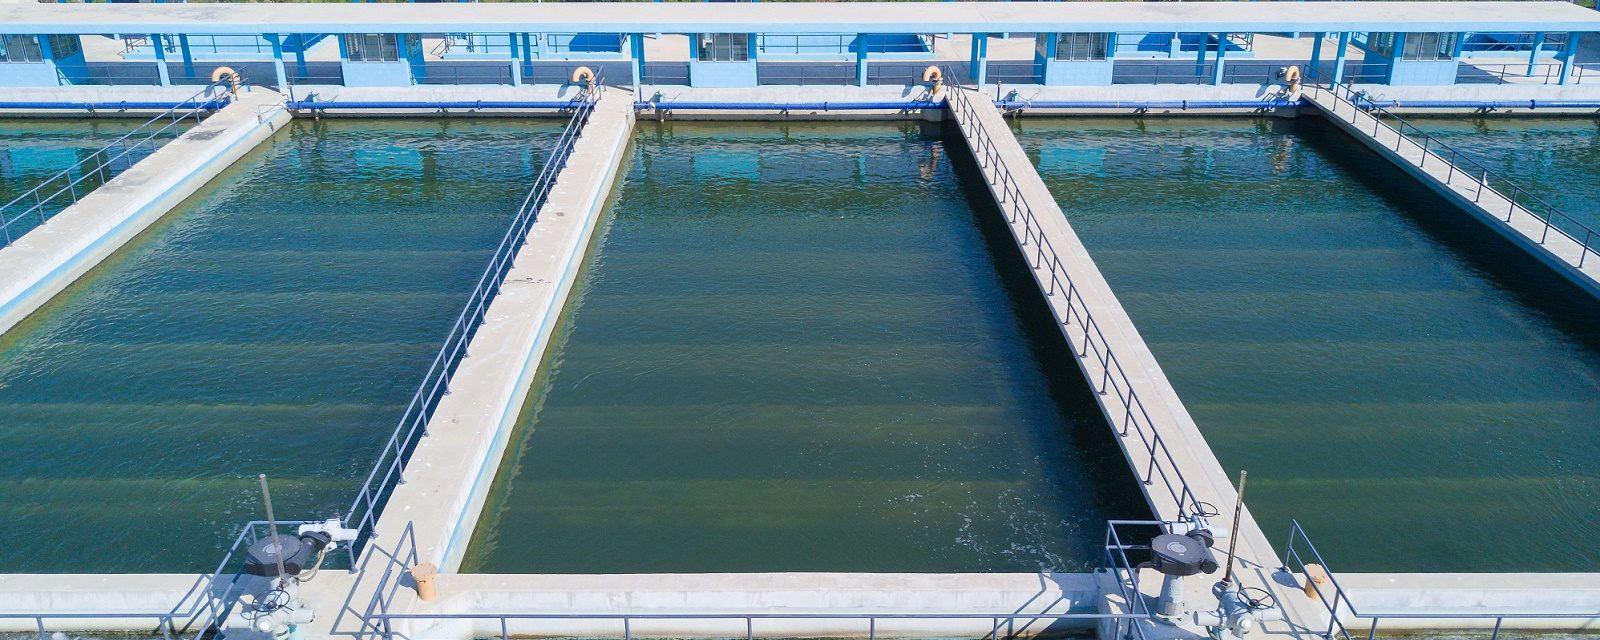 Water Treatment Certification Practice Test - For Operator Exam